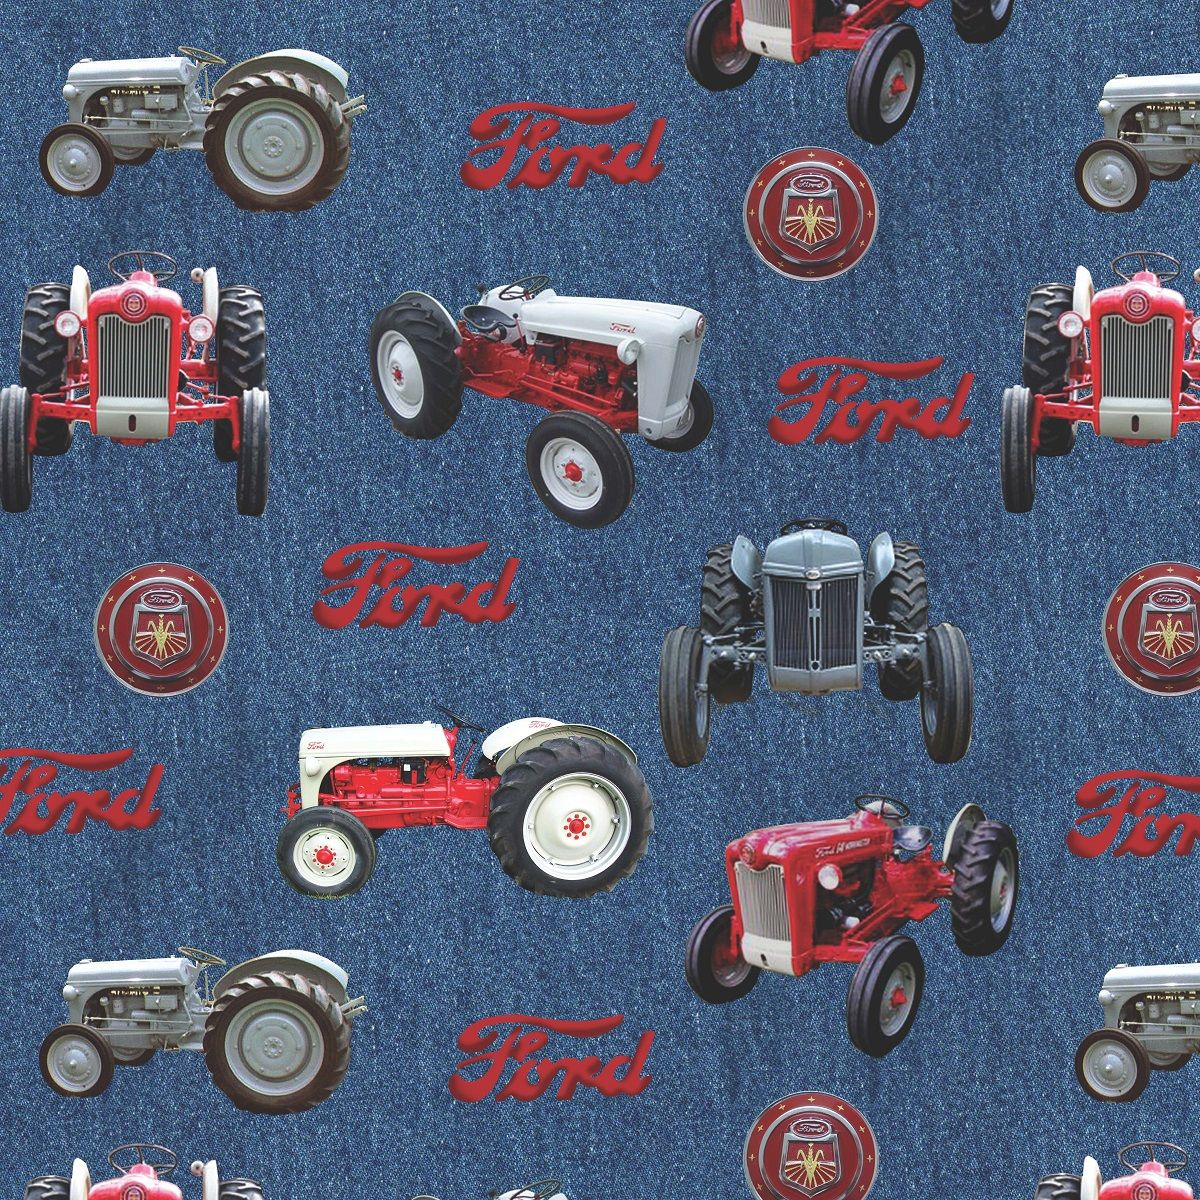 9n Ford Tractor For Sale: Ford Denim Tractor Toss With 9N, 8N, Jubilee And 641